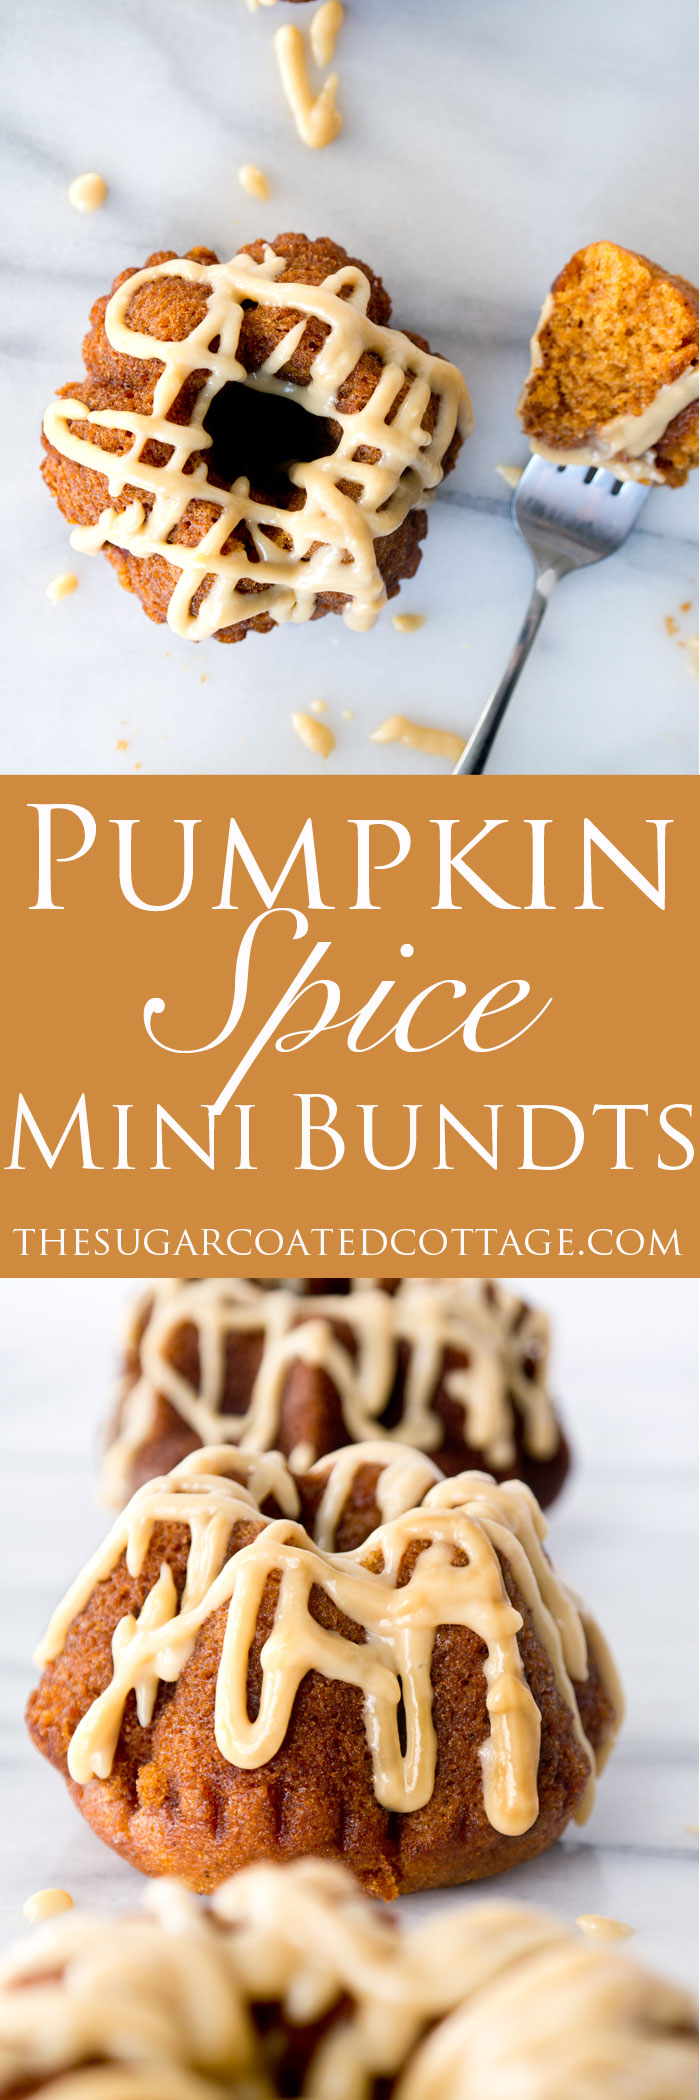 Pumpkin Spice Mini Bundt's with Baileys Pumpkin Spice Glaze